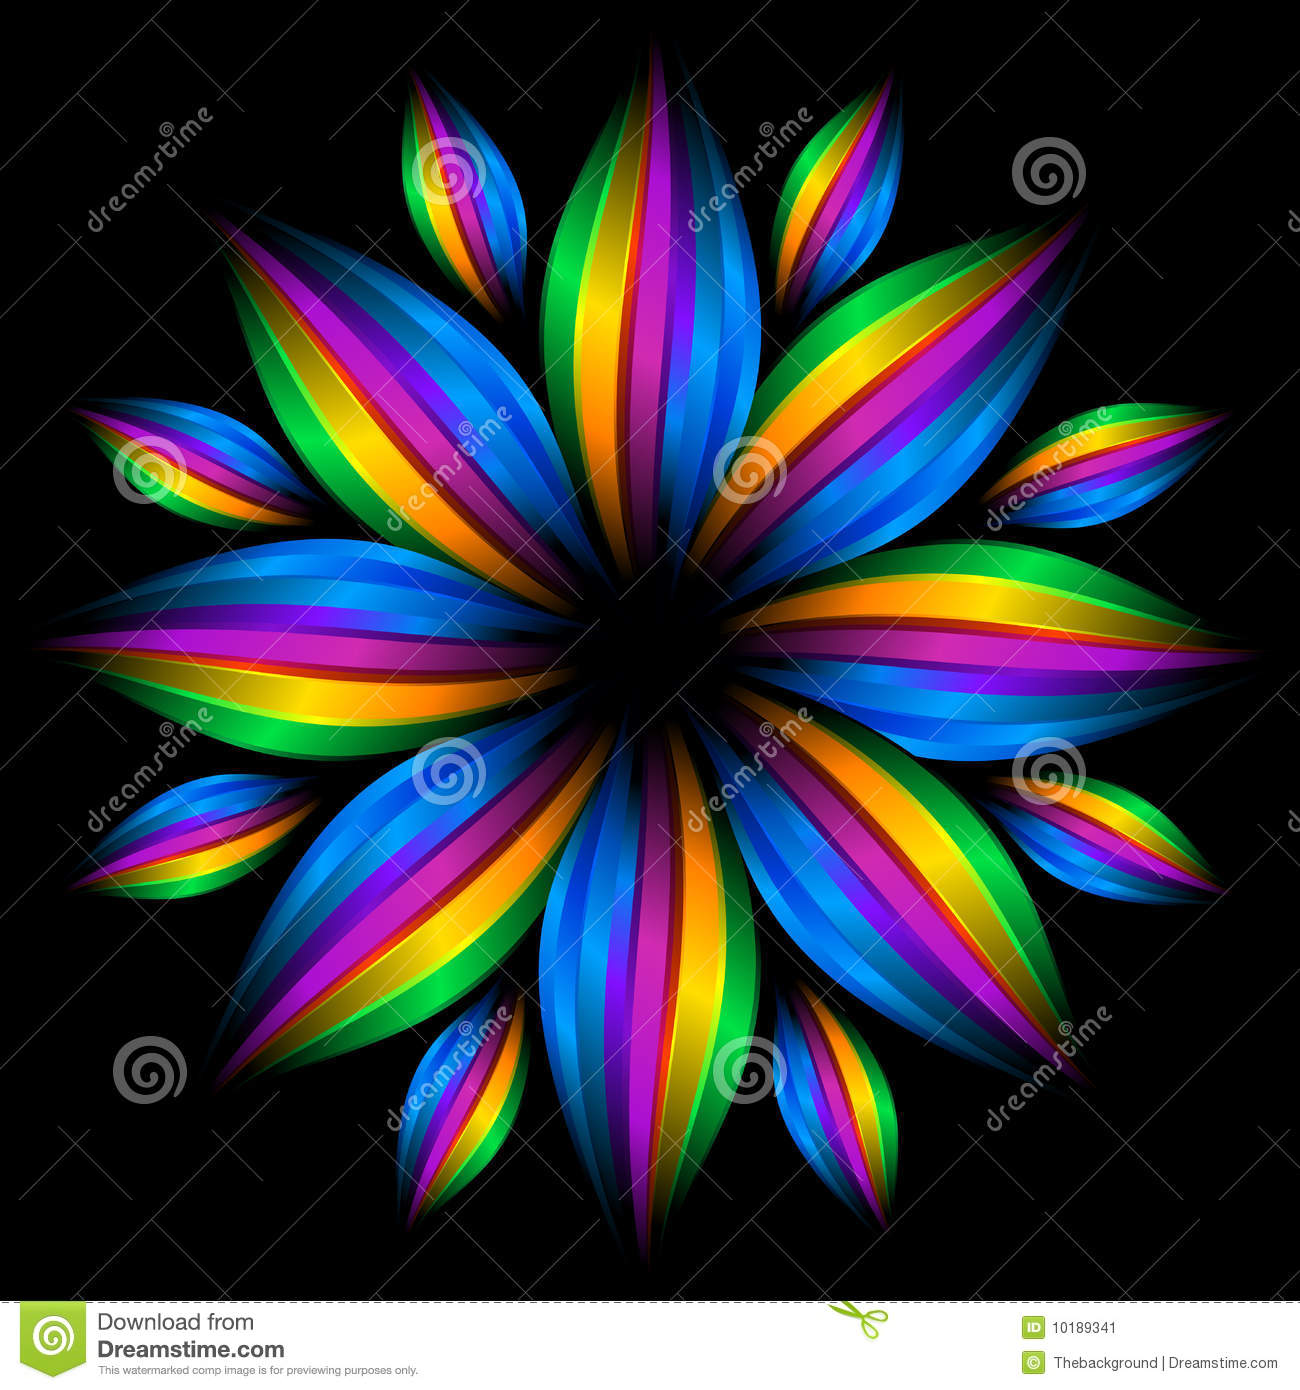 3d Rainbow Psychedeli Wallpaper Abstract Futuristic Rainbow Flower Stock Illustration